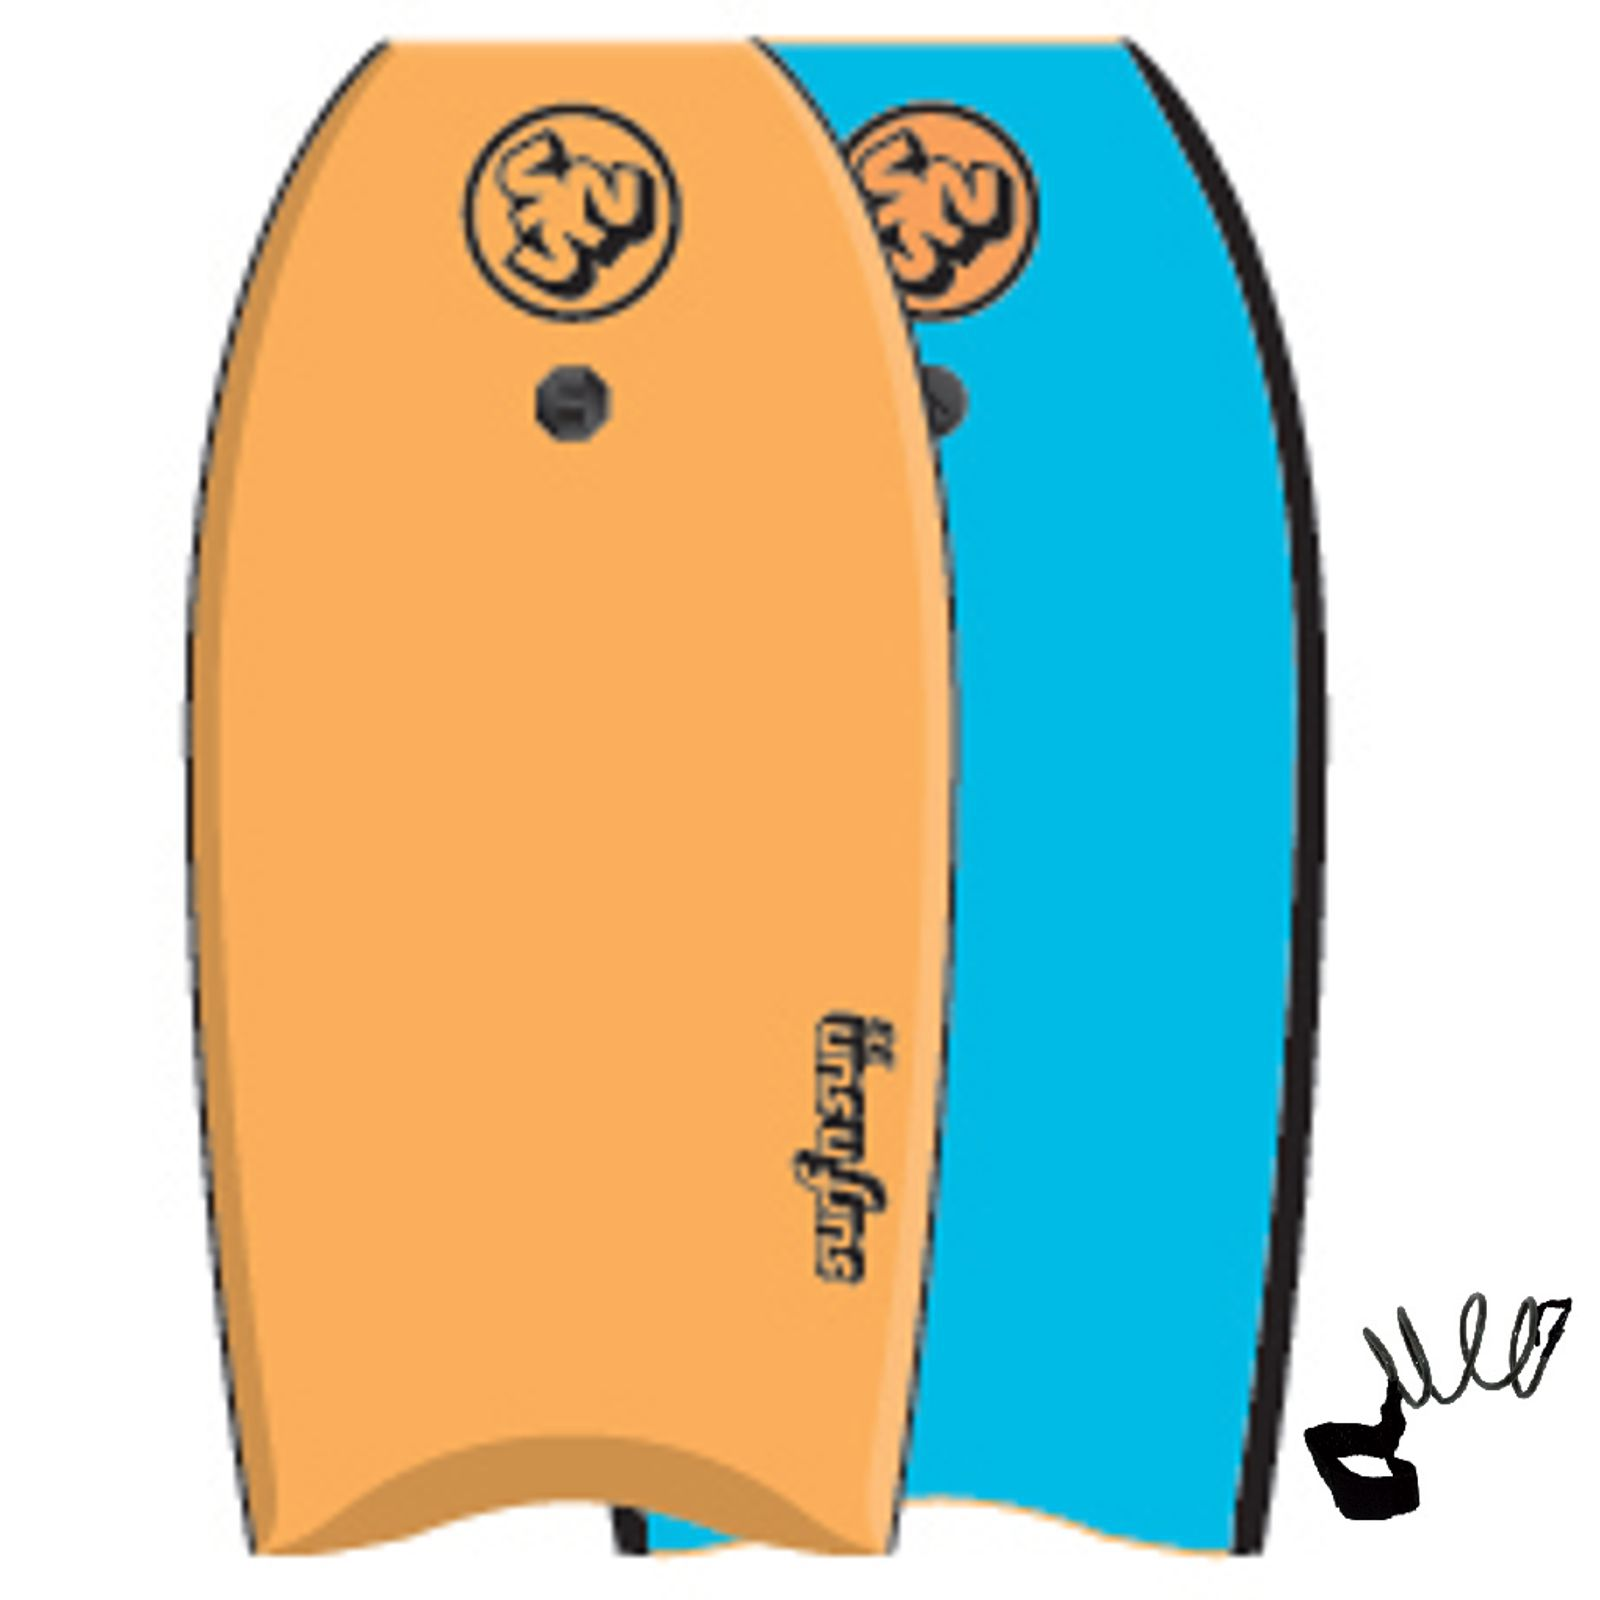 SurfnSun Bodyboard Similar 39 Orange Blau